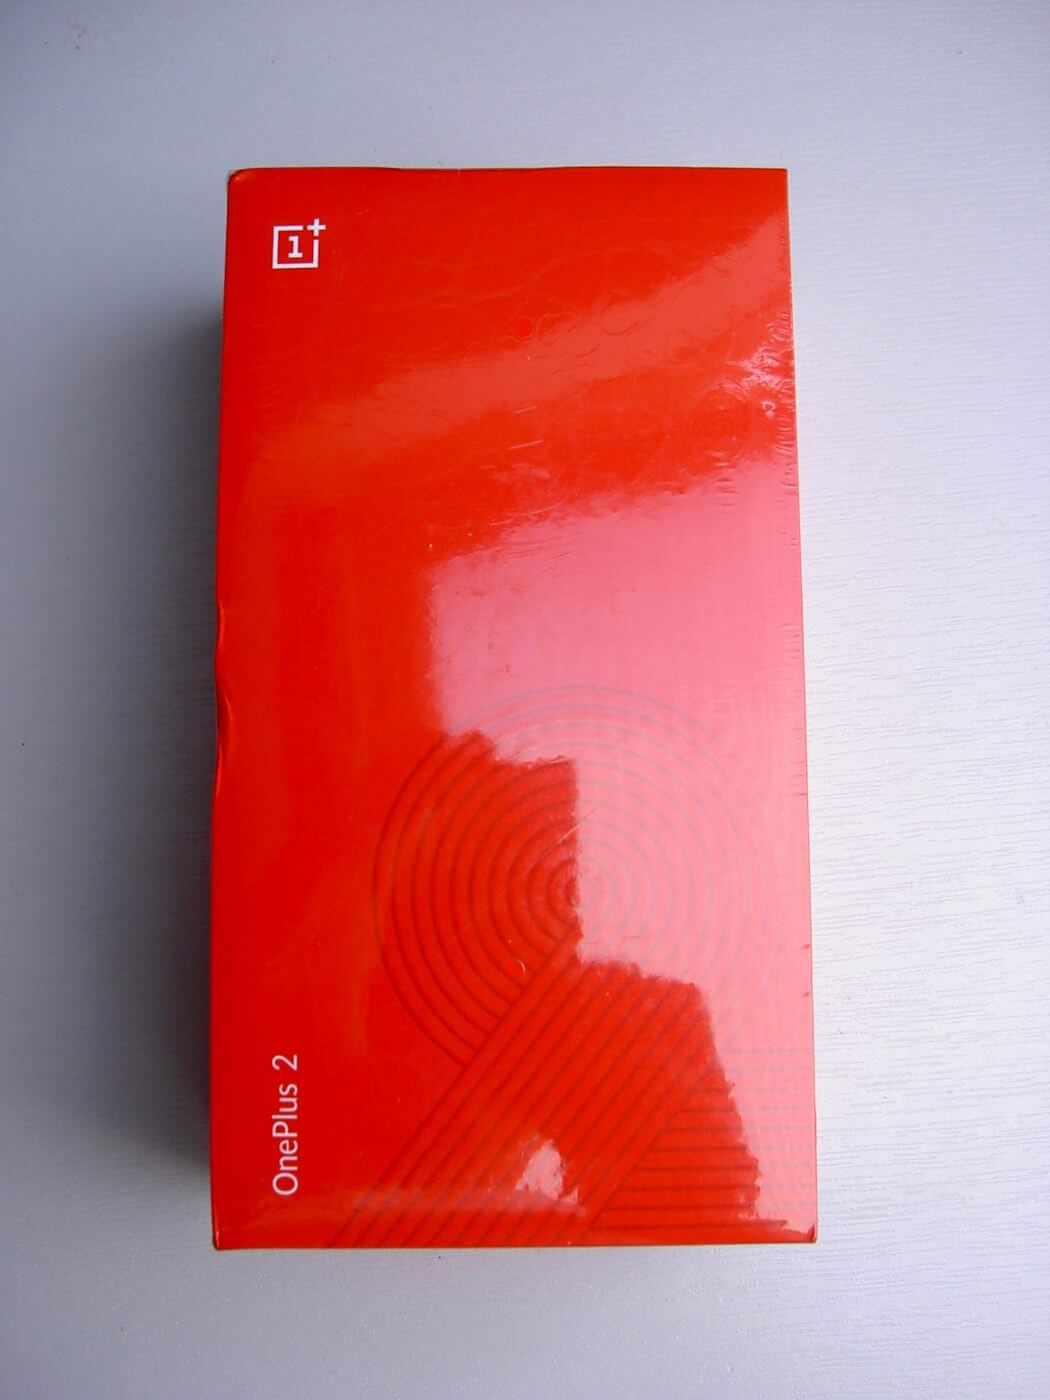 OnePlus 2 in box in wrap